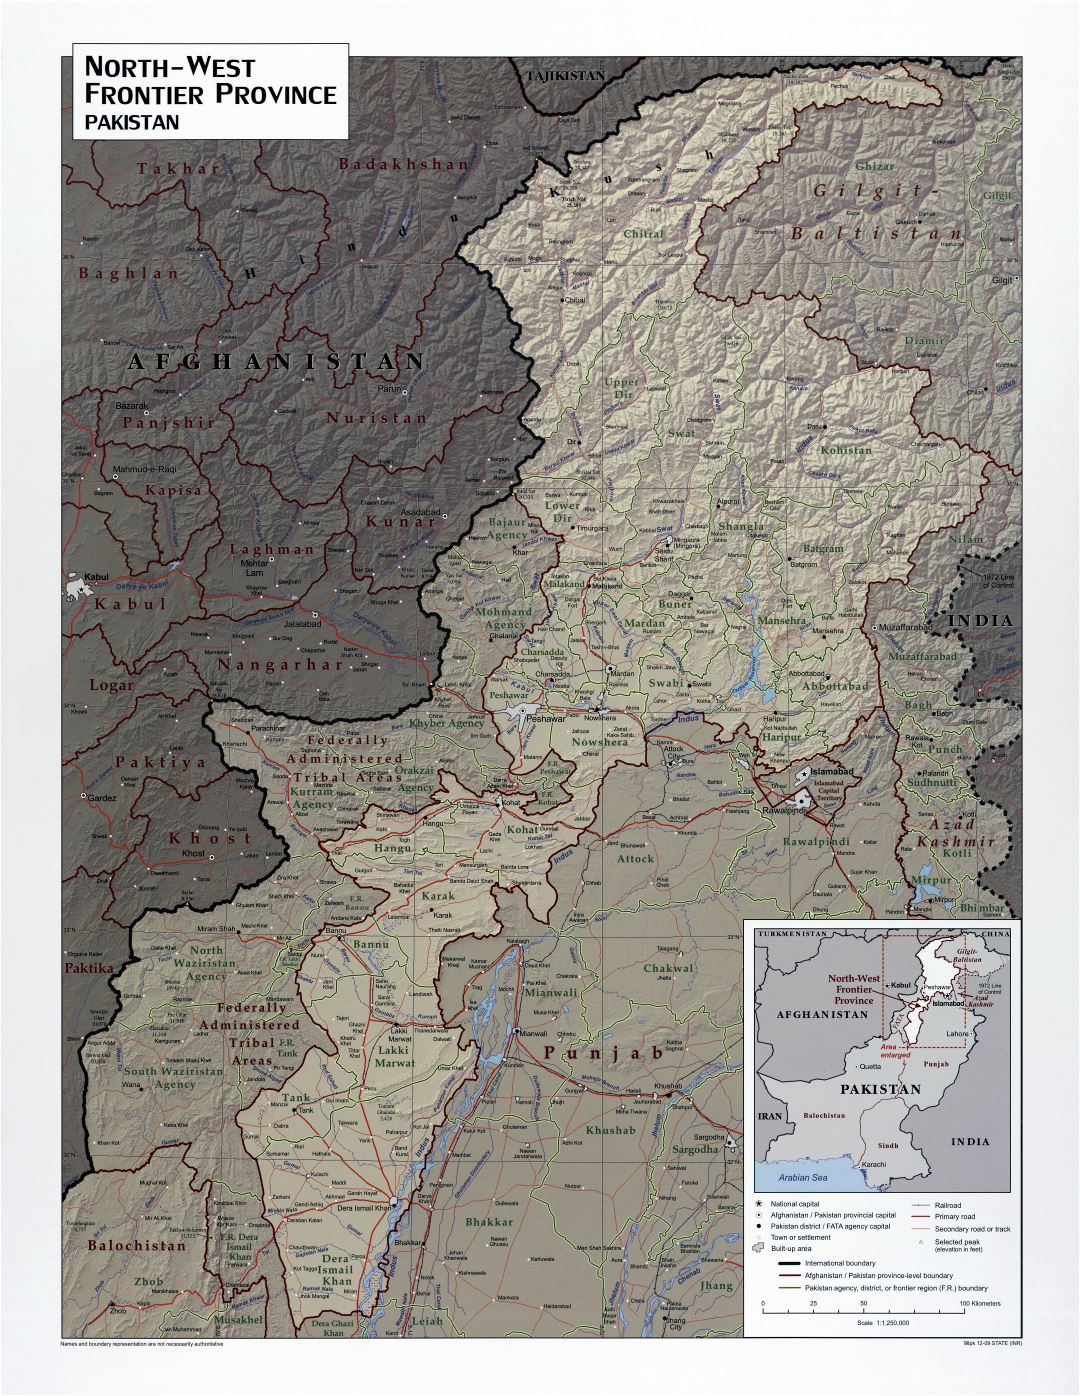 Large scale detailed North West Frontier Province of Pakistan map with relief, roads, railroads and cities - 2009